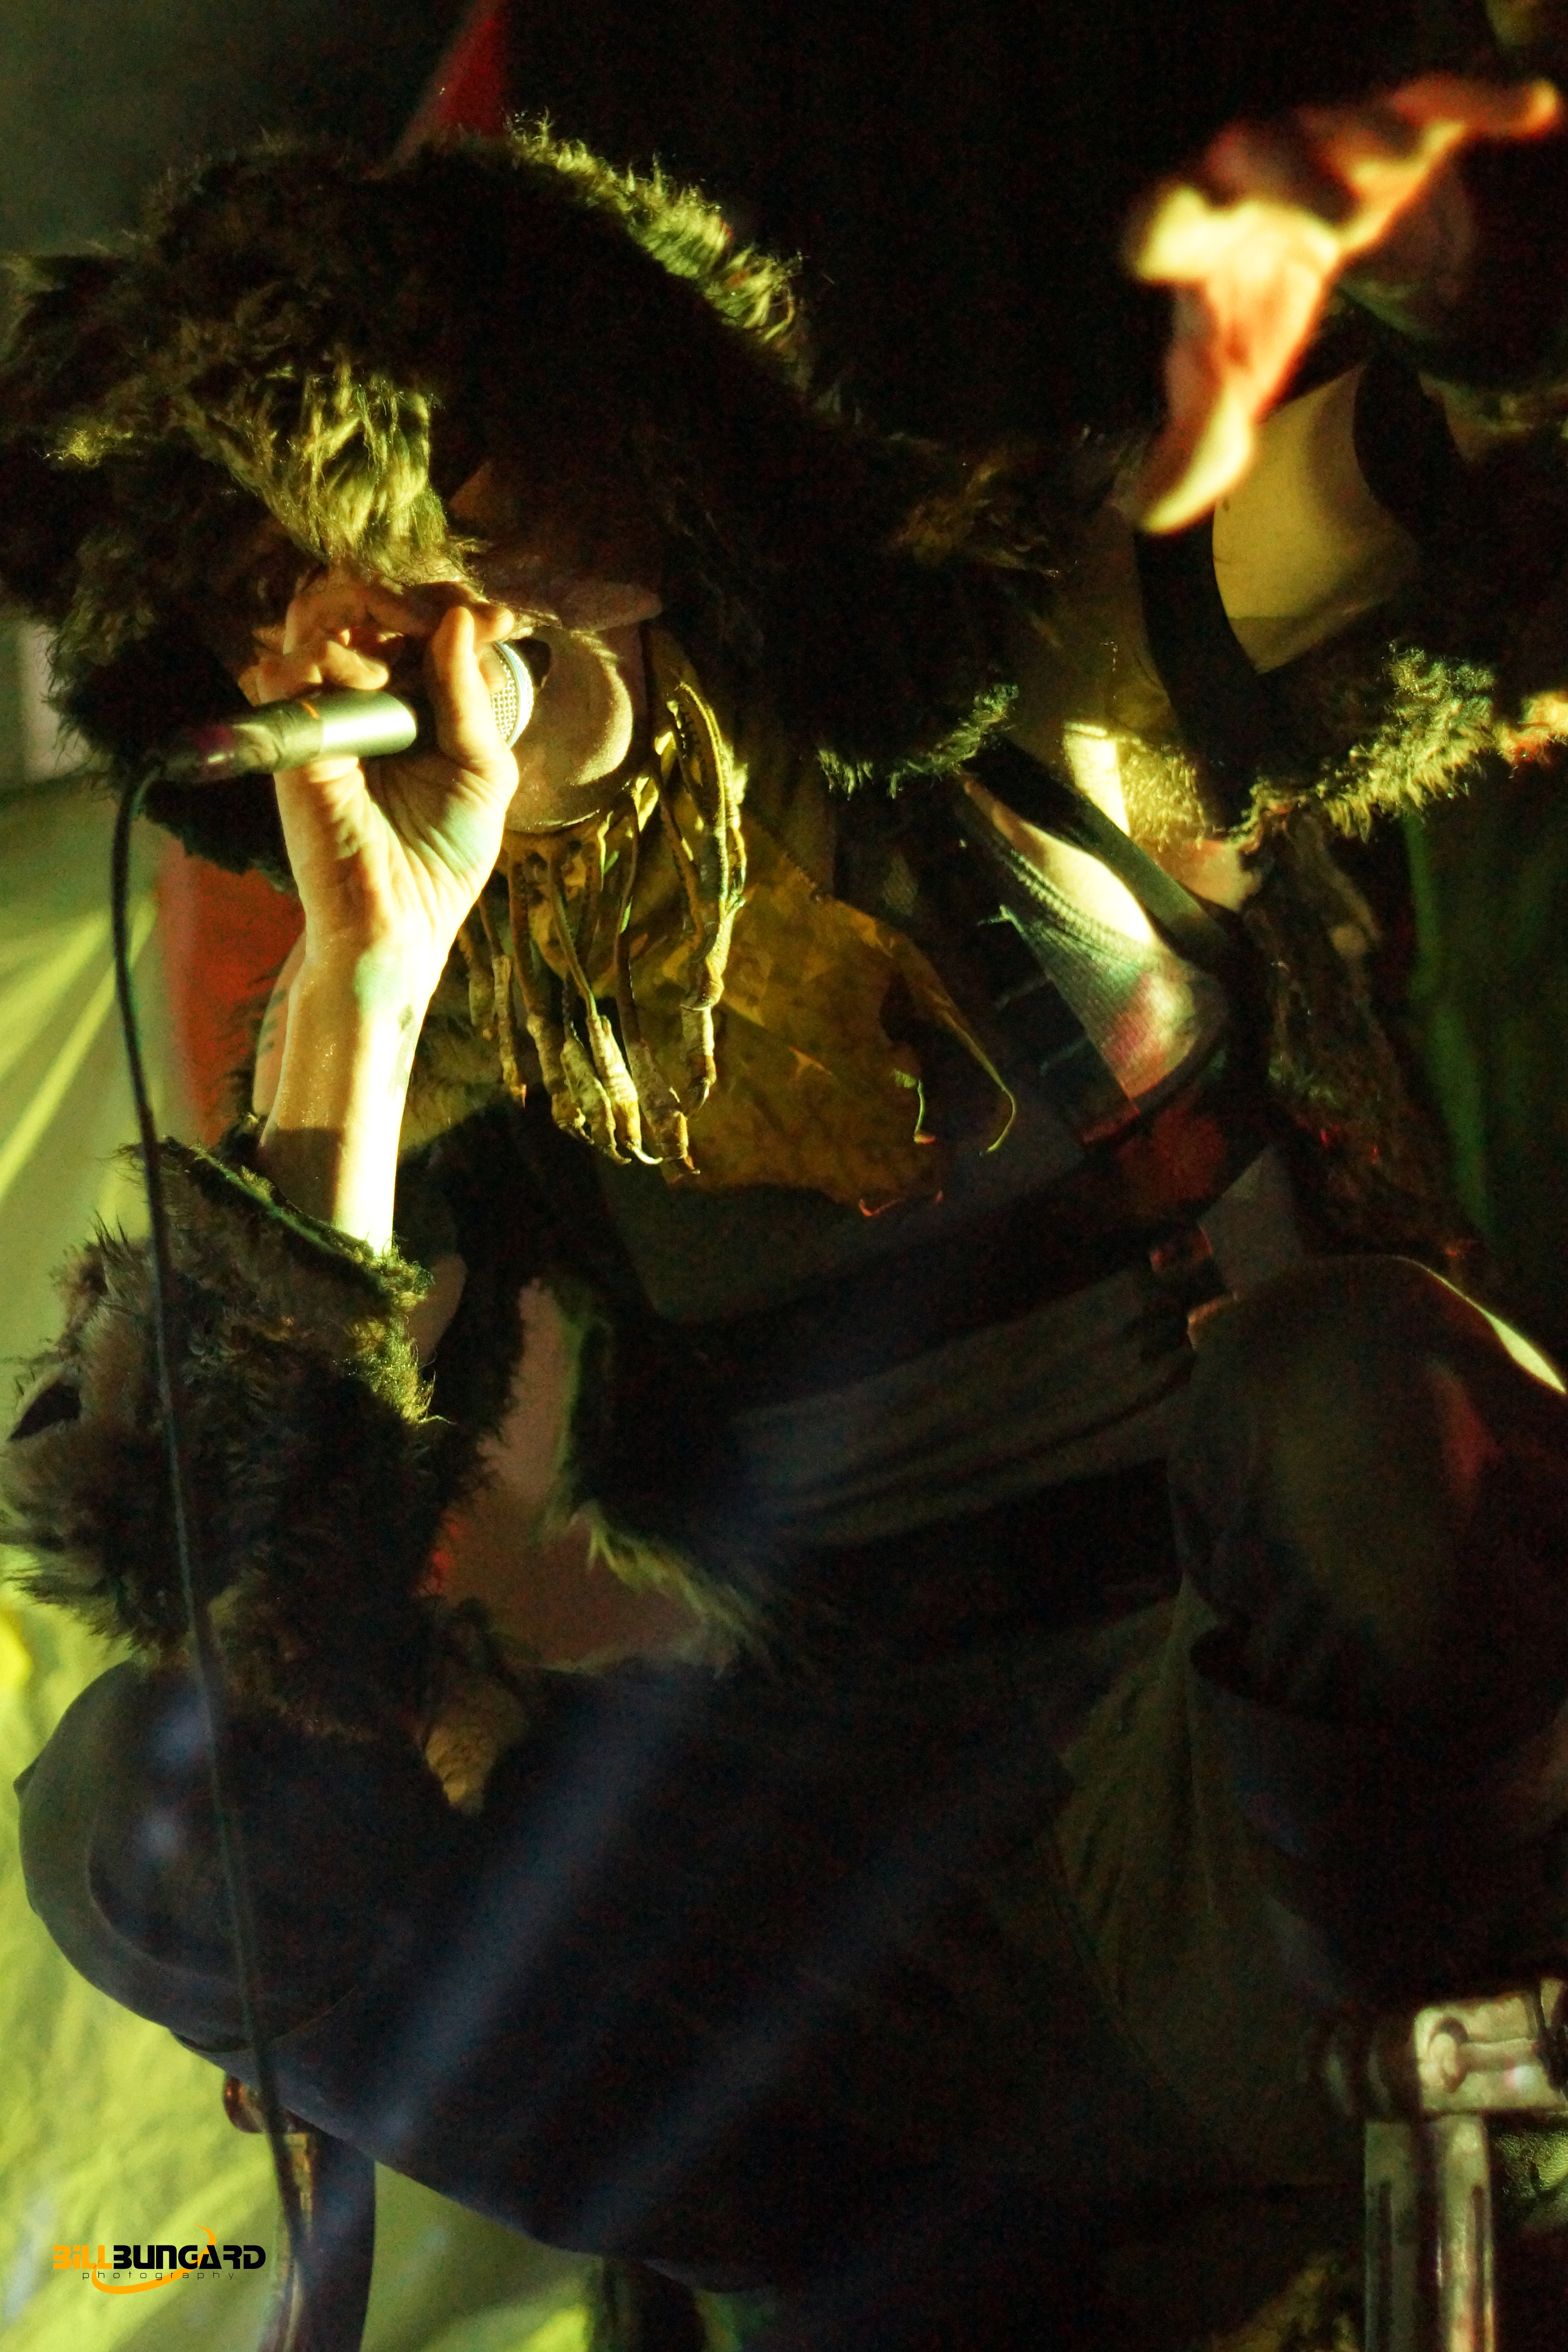 Skinny Puppy Live at Showbox (Photo by Bill Bungard)